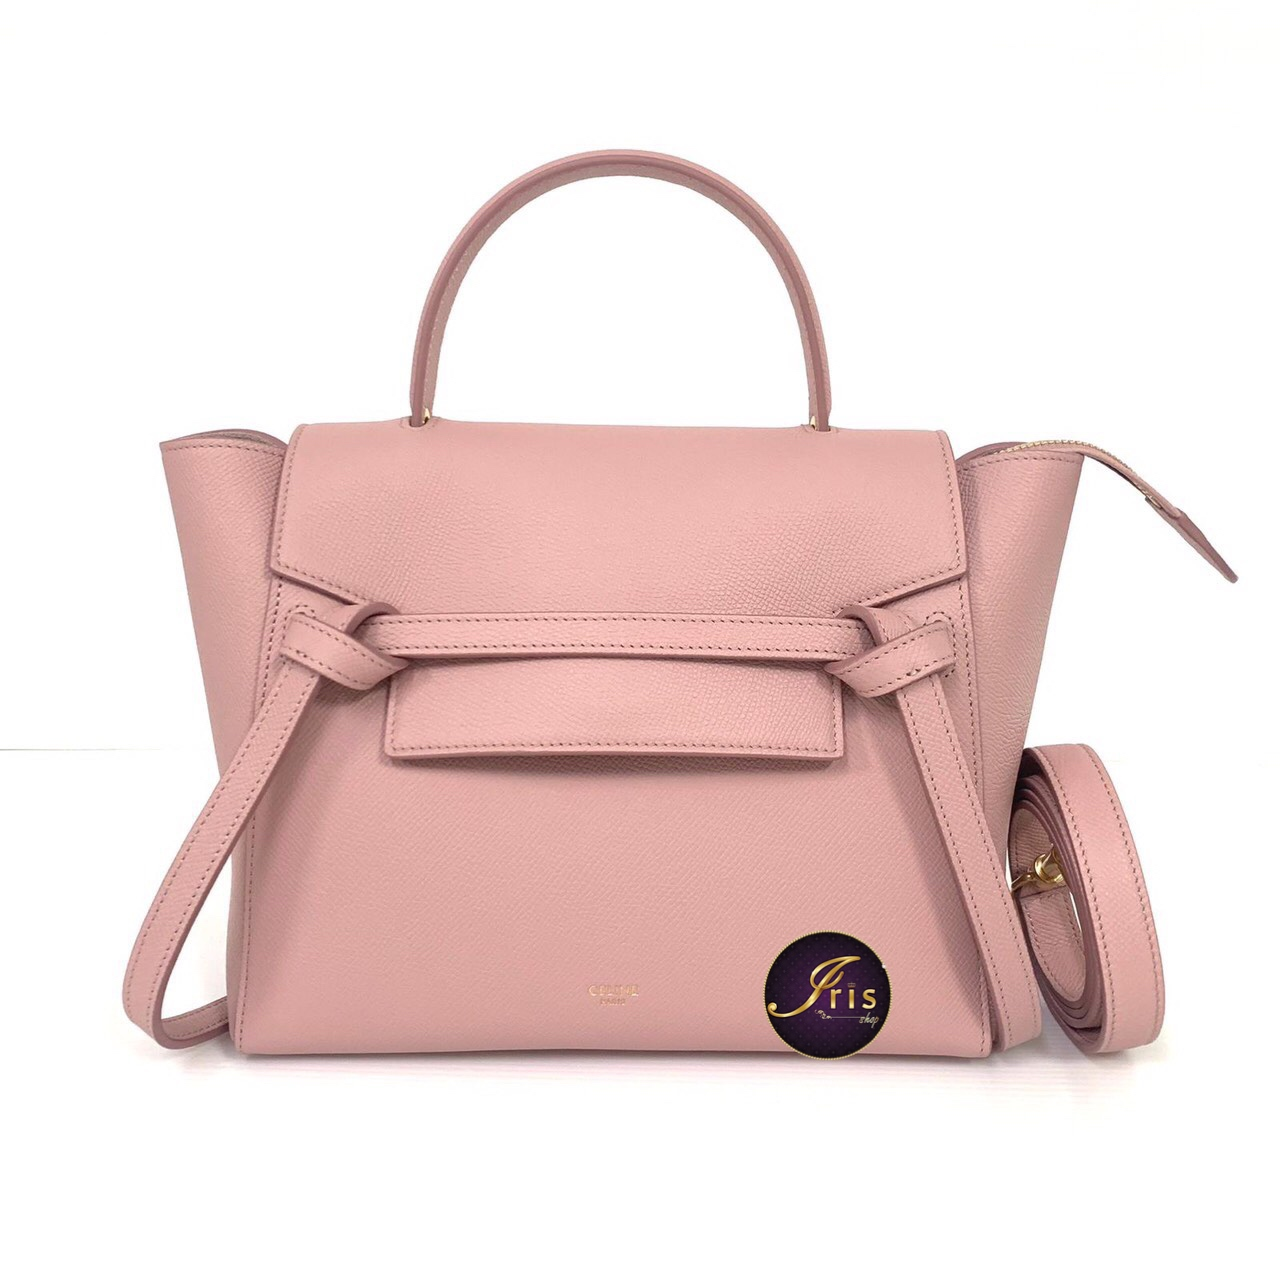 Celine Micro Belt Bag In Vintage Pink ของใหม พร อมส ง Iris Shop